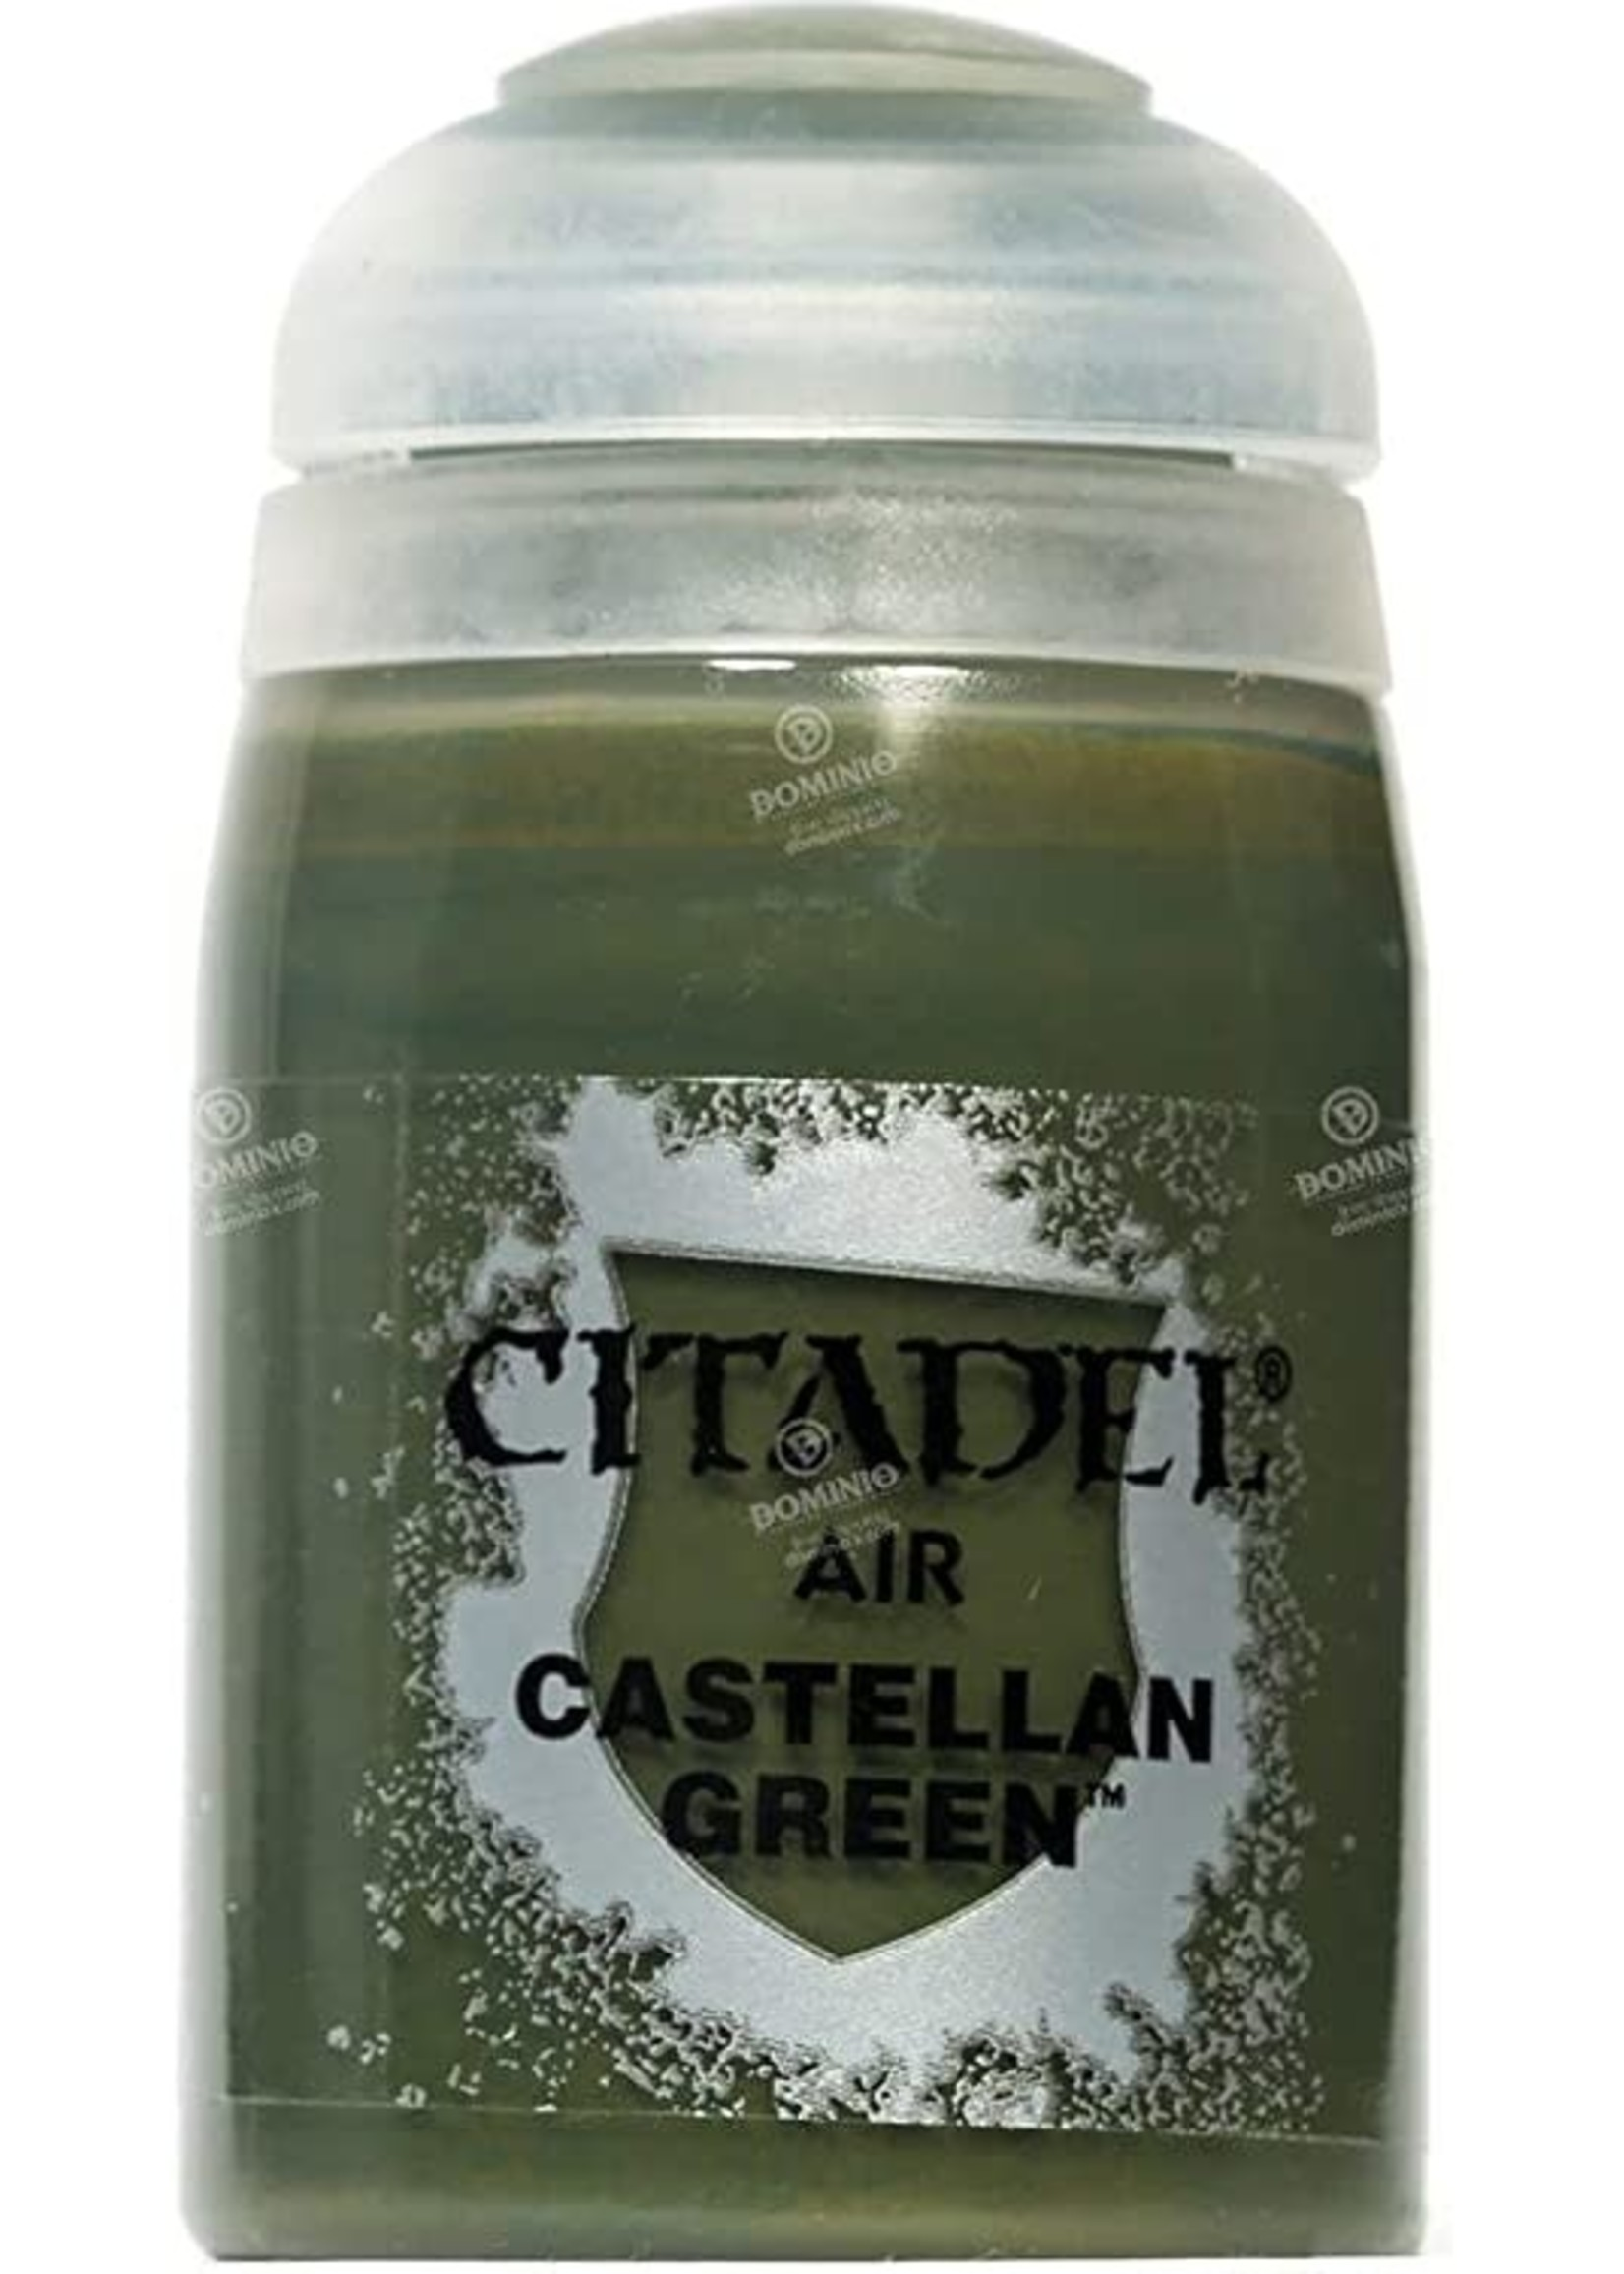 Games Workshop Citadel Paint: Castellan Green Air (24 ml)